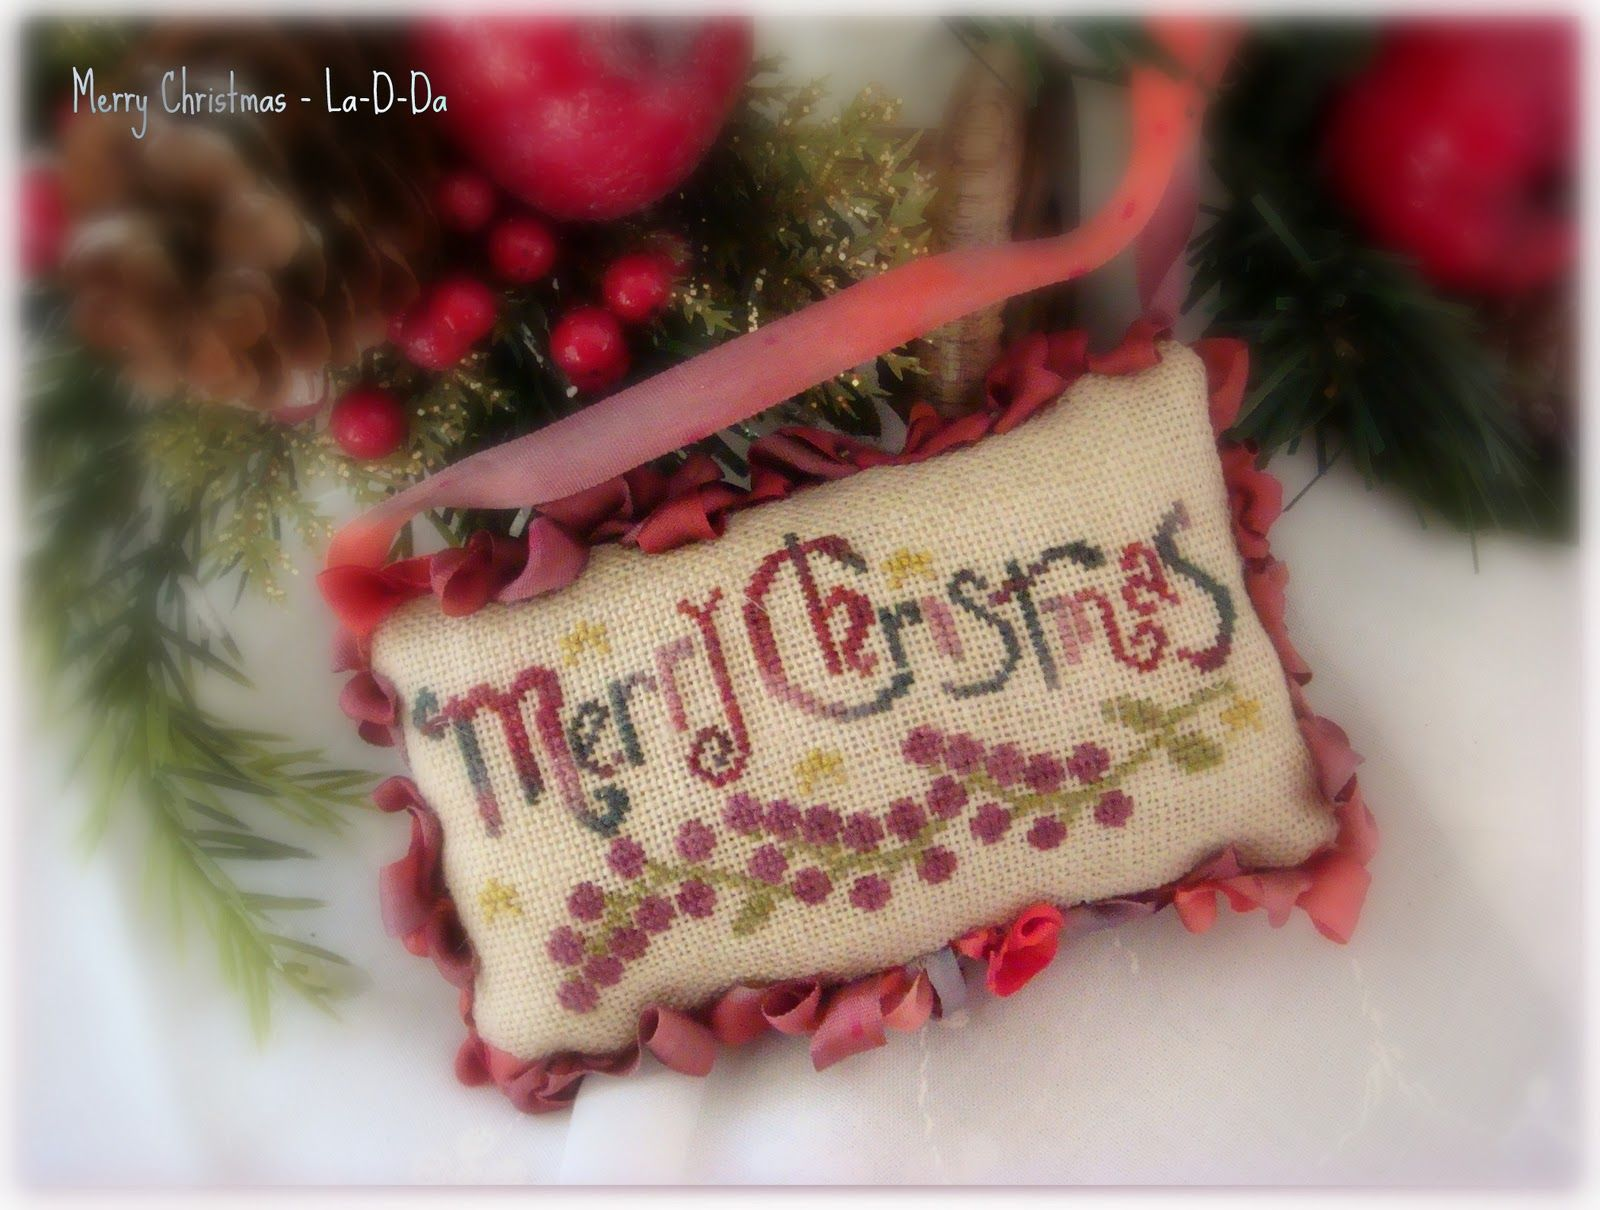 """La-D-Da """"Merry Christmas"""" from the 2009 JCS Christmas Ornament issue"""